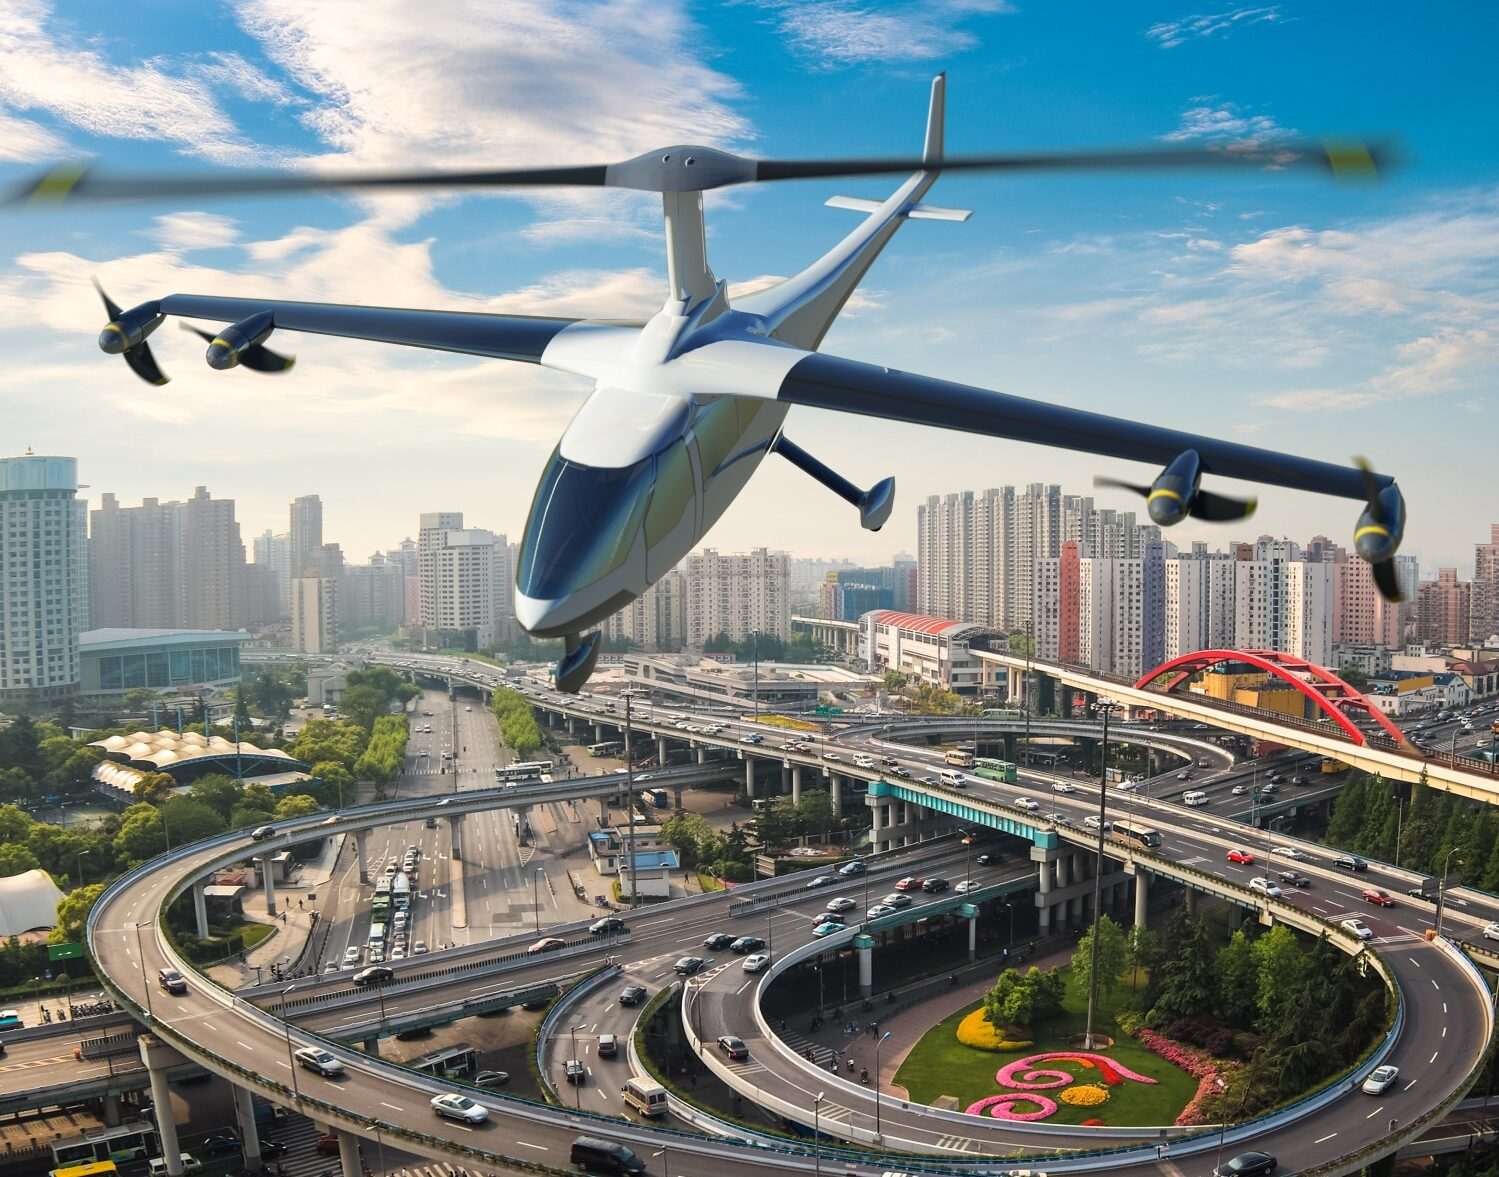 How the more electrical aircraft technology will help the transition to a greener futur